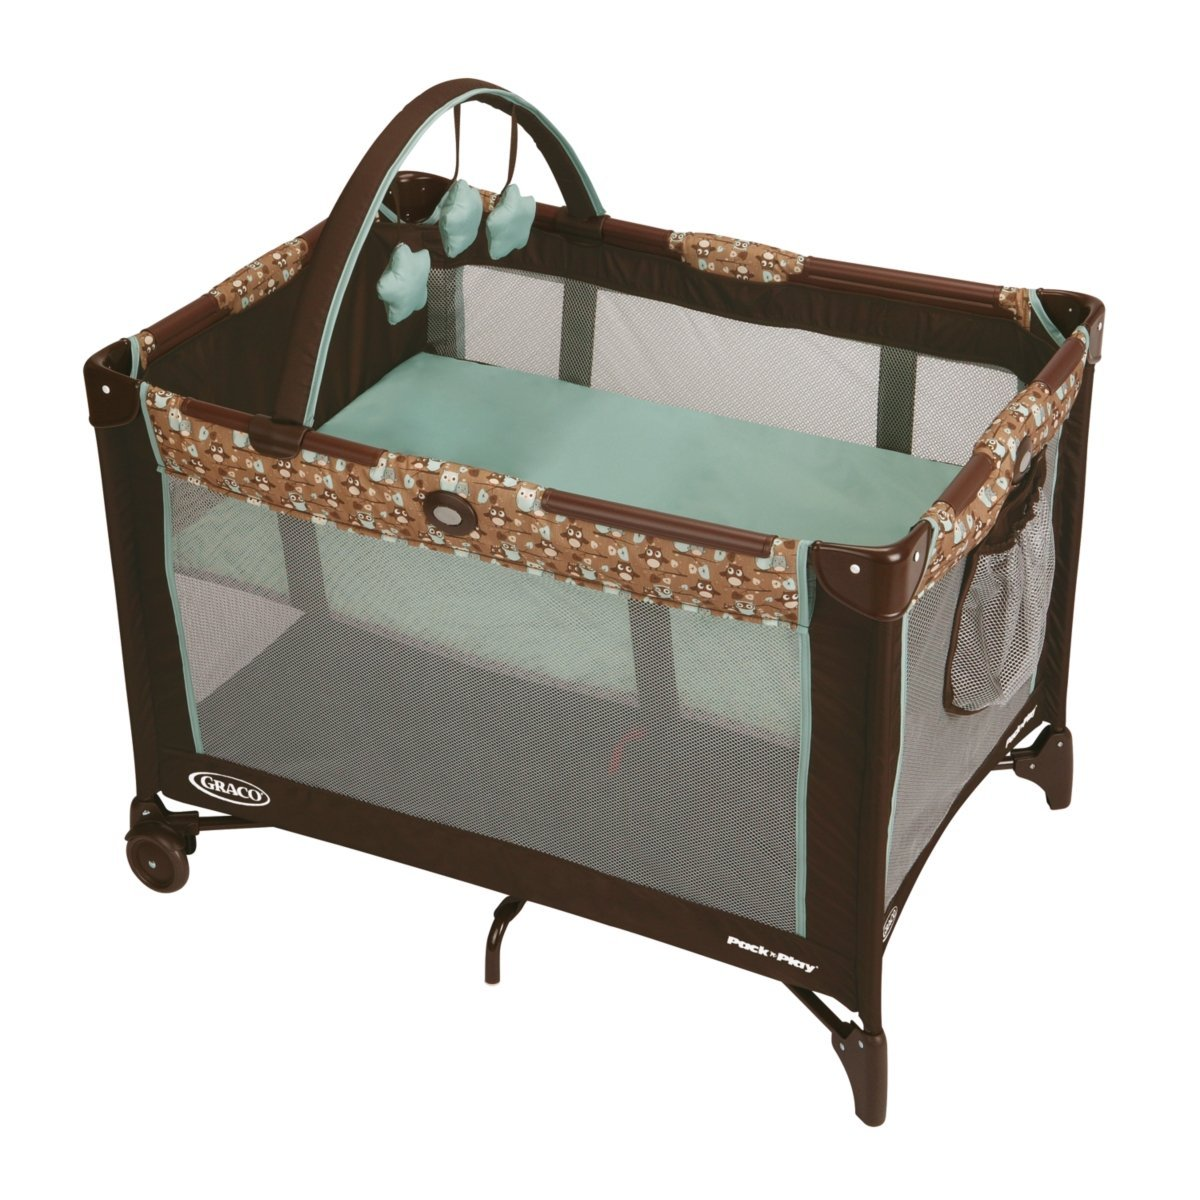 BER?O GRACO PACK' N PLAY PLAYARD WITH BASSINET - LITTLE HOOT